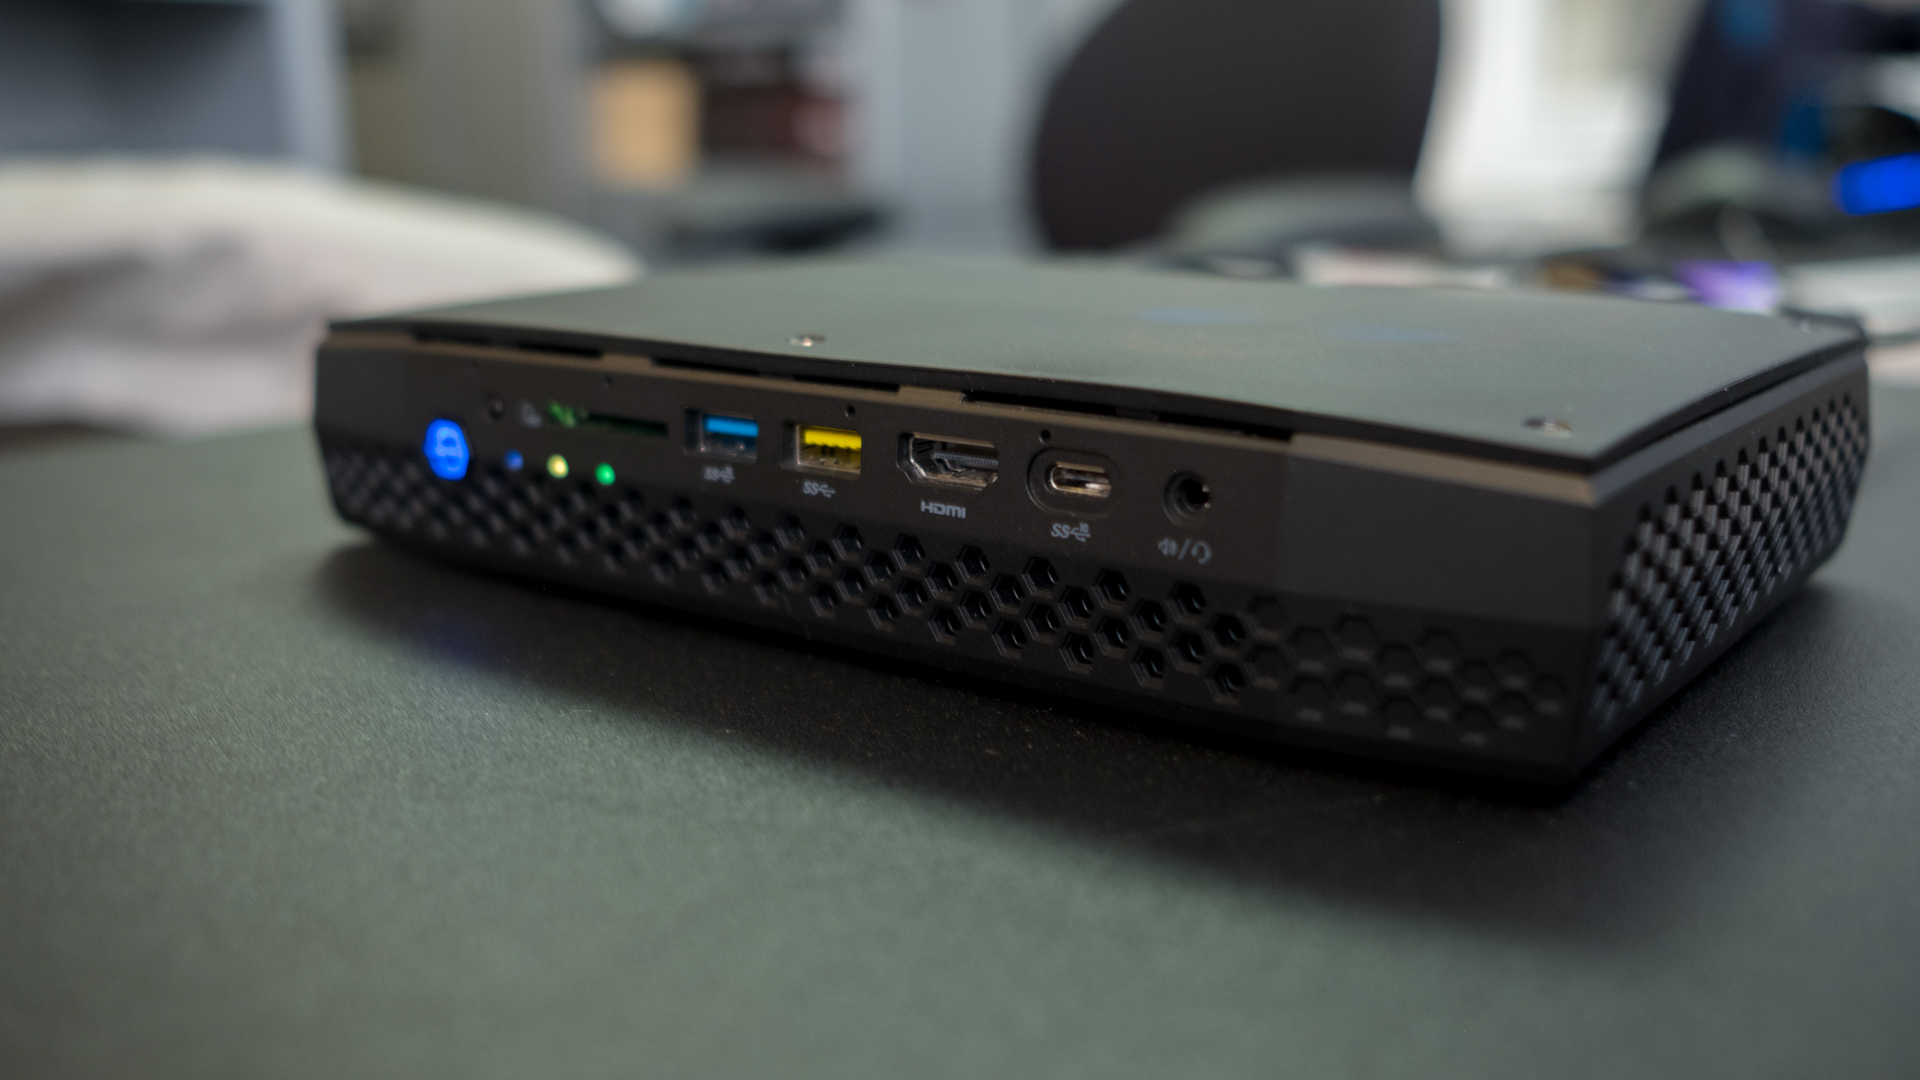 Intel Hades Canyon NUC